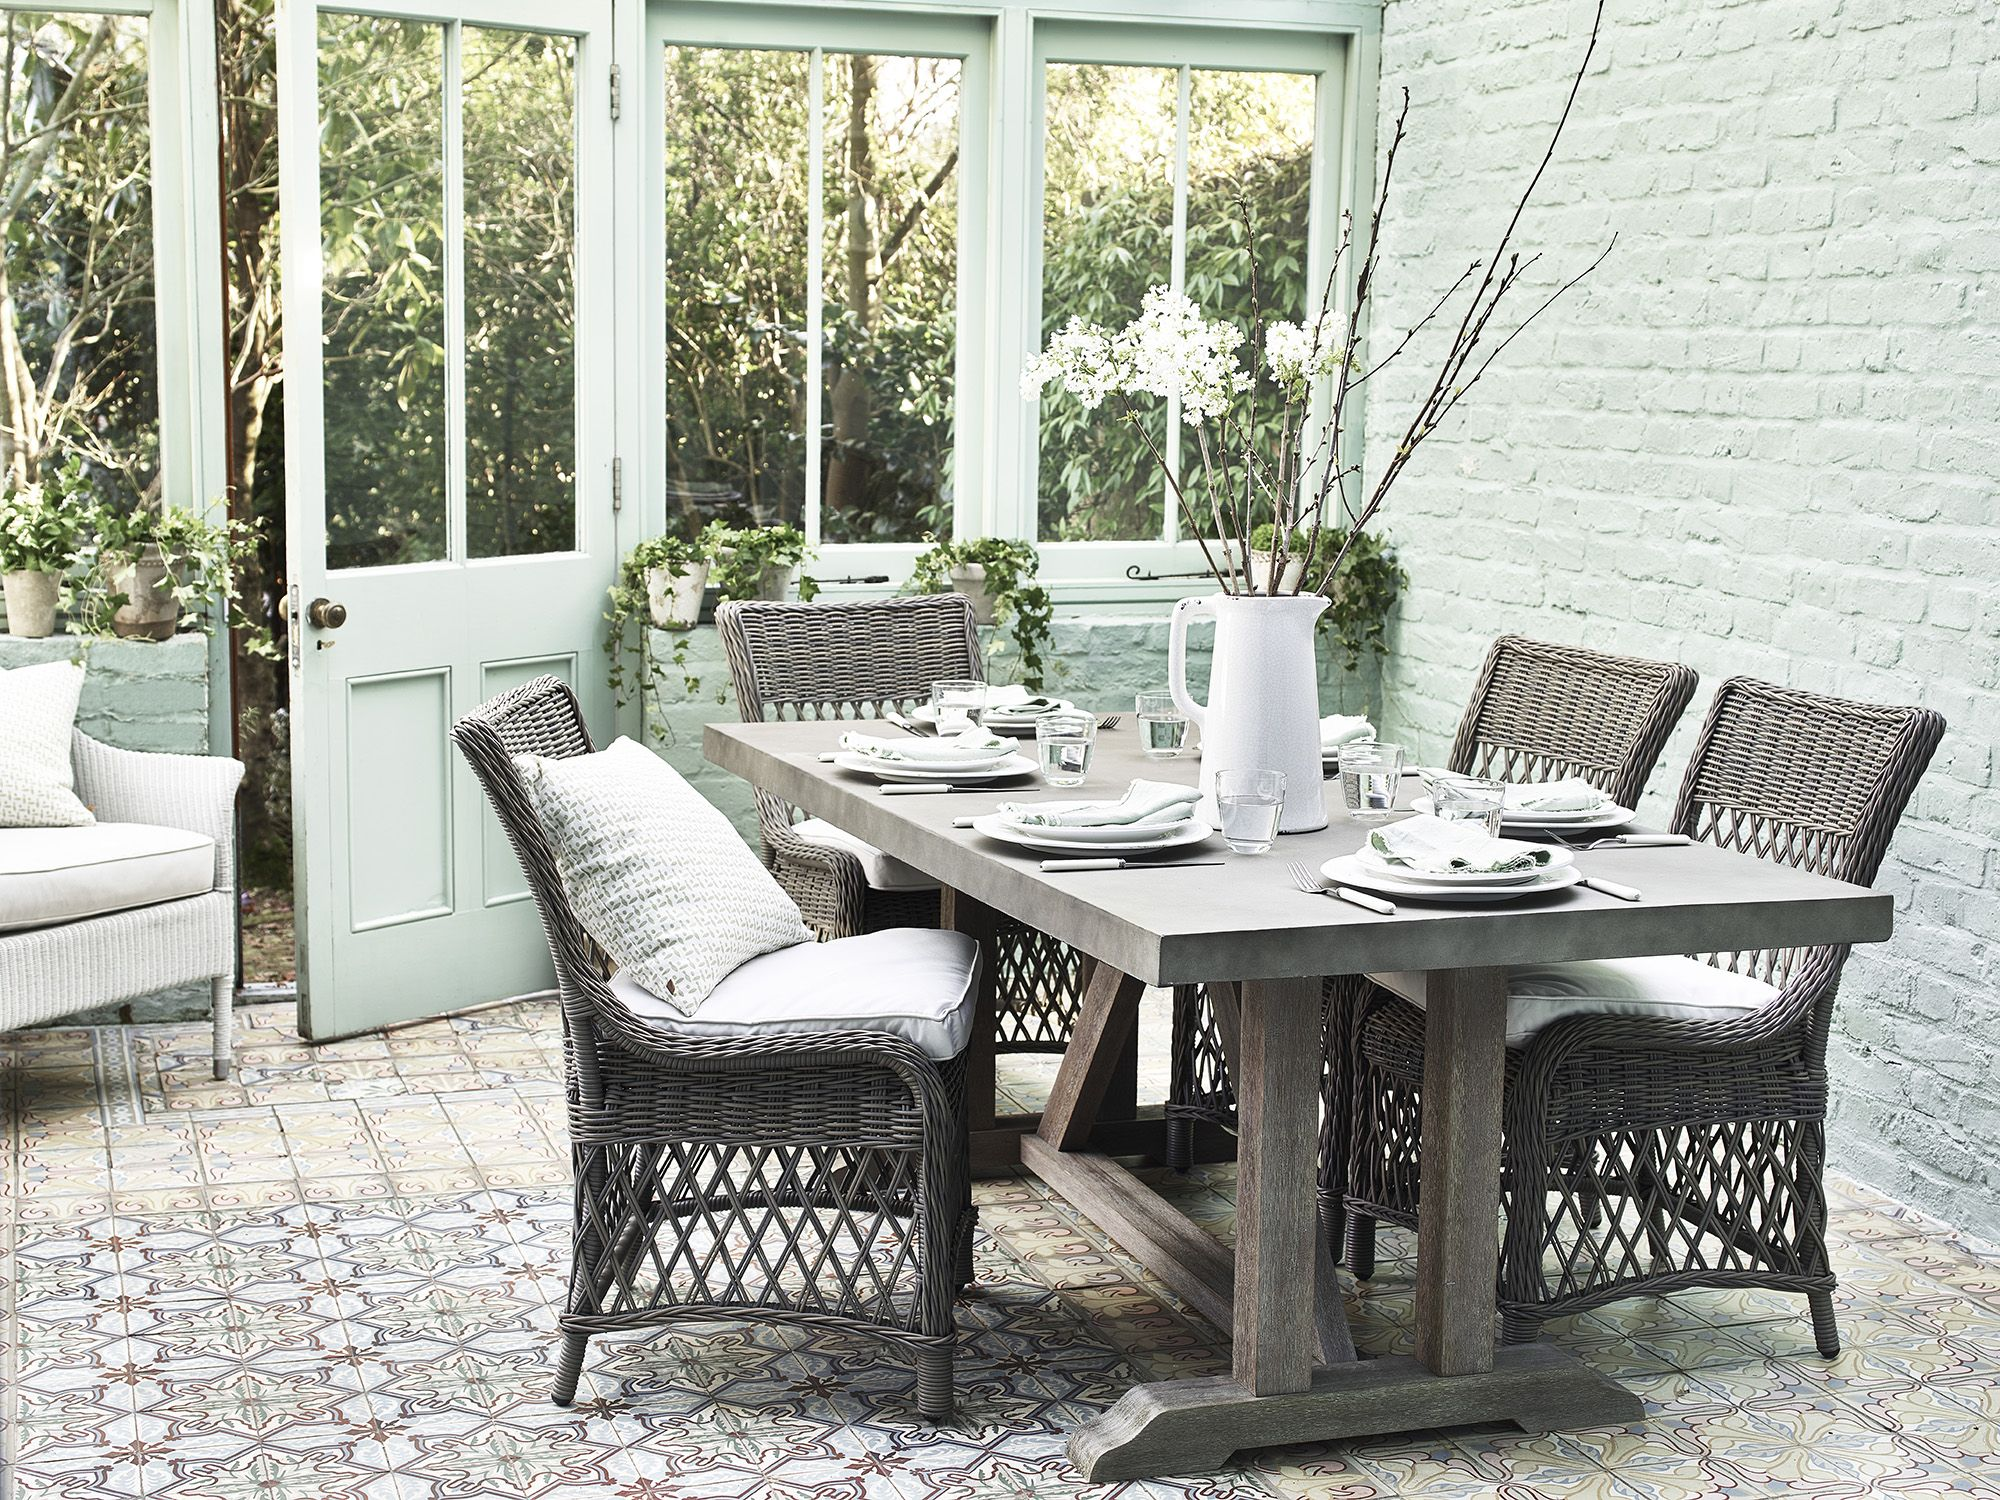 Neptune Hudson Table And Harrington Chairs Garden Furniture Design Patio Furniture Rattan Outdoor Furniture